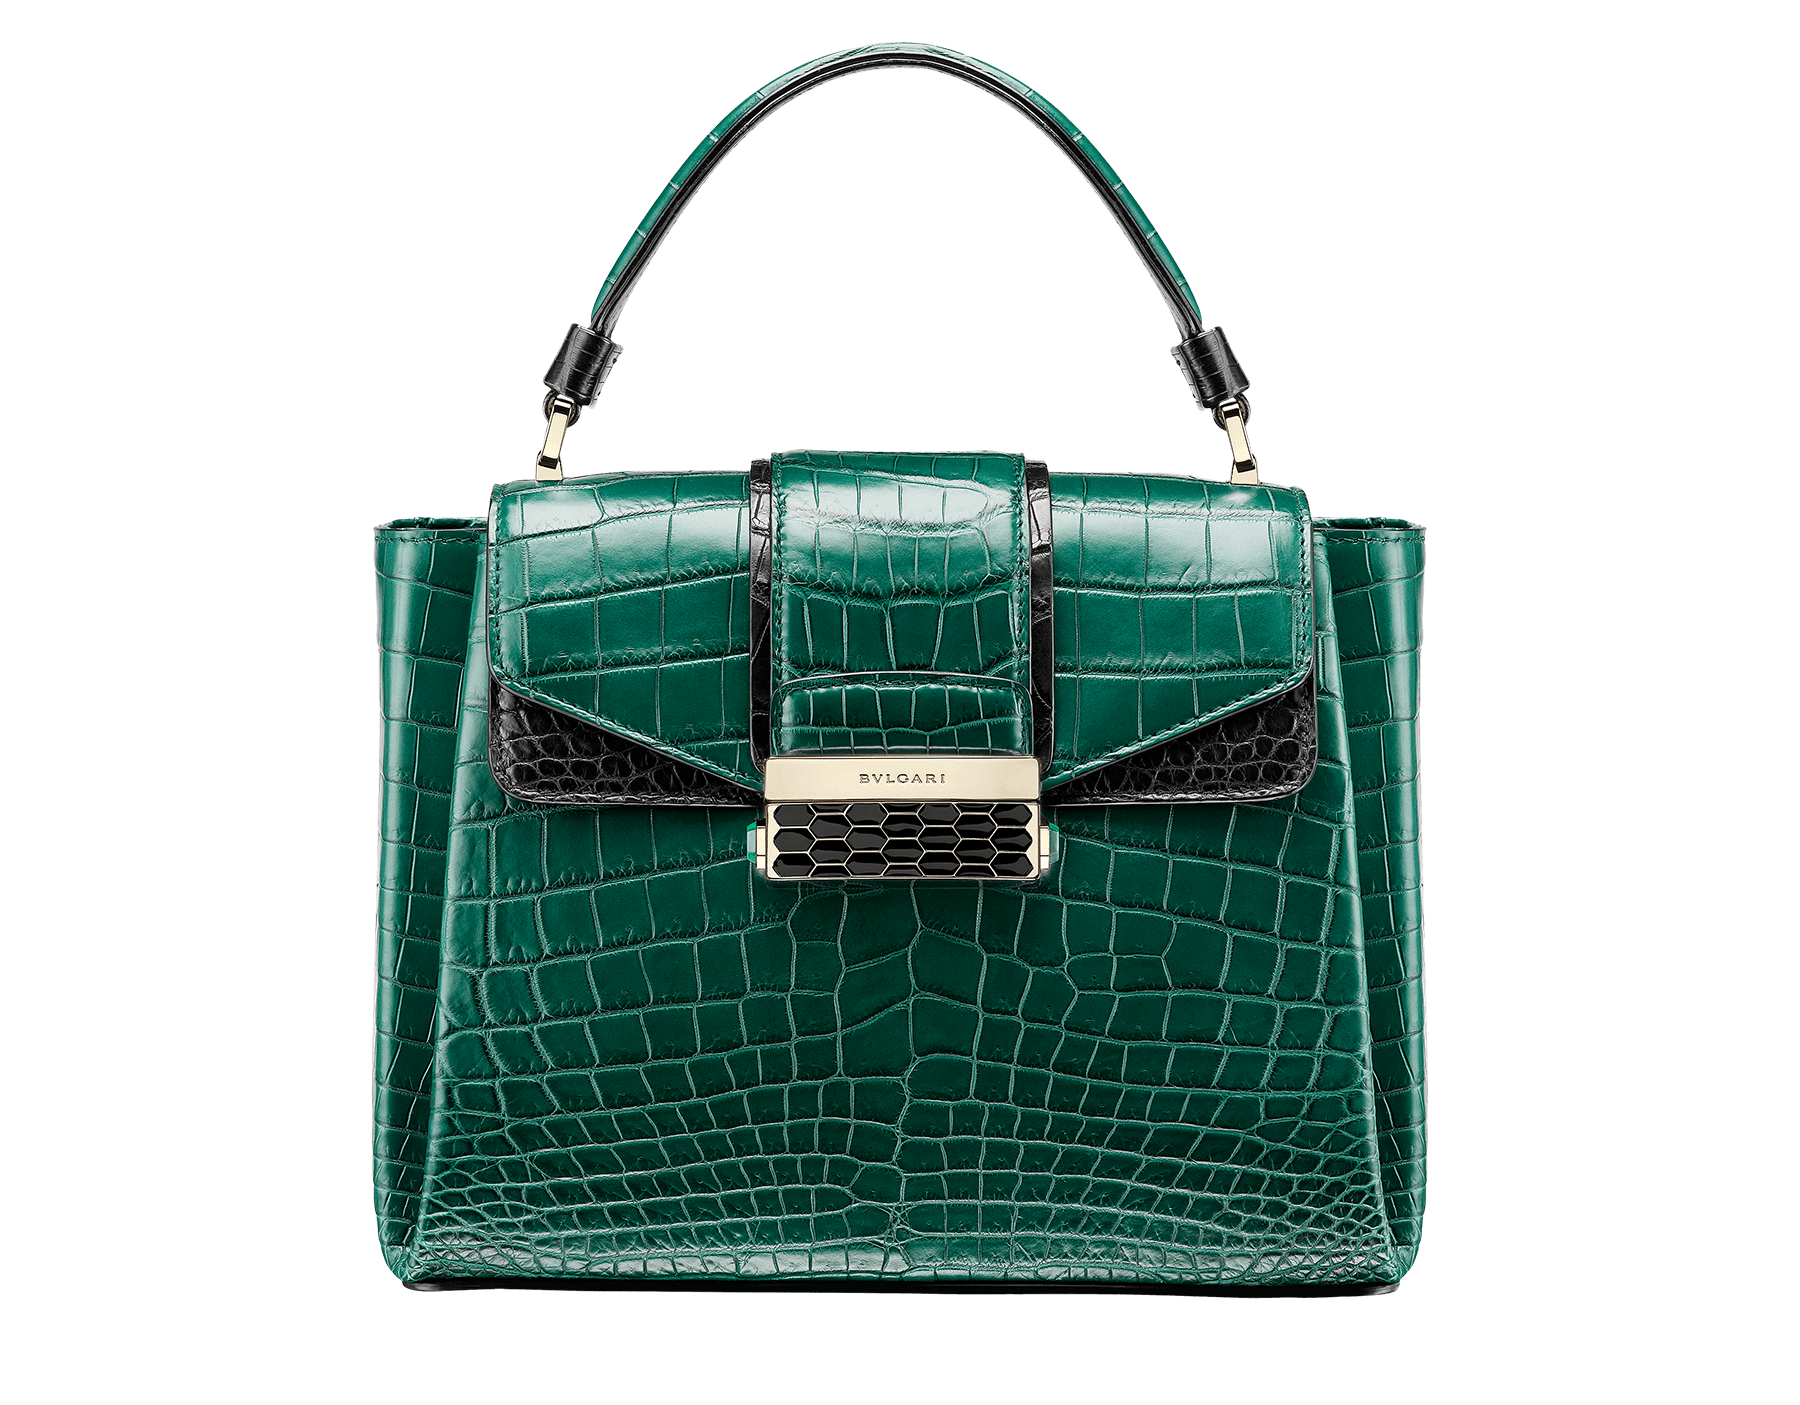 Top handle bag Serpenti Viper in forest emerald and black matt crocodile skin. Brass light gold plated hardware and snap closure in black shiny enamel with iconic Scaglie design. 284488 image 1